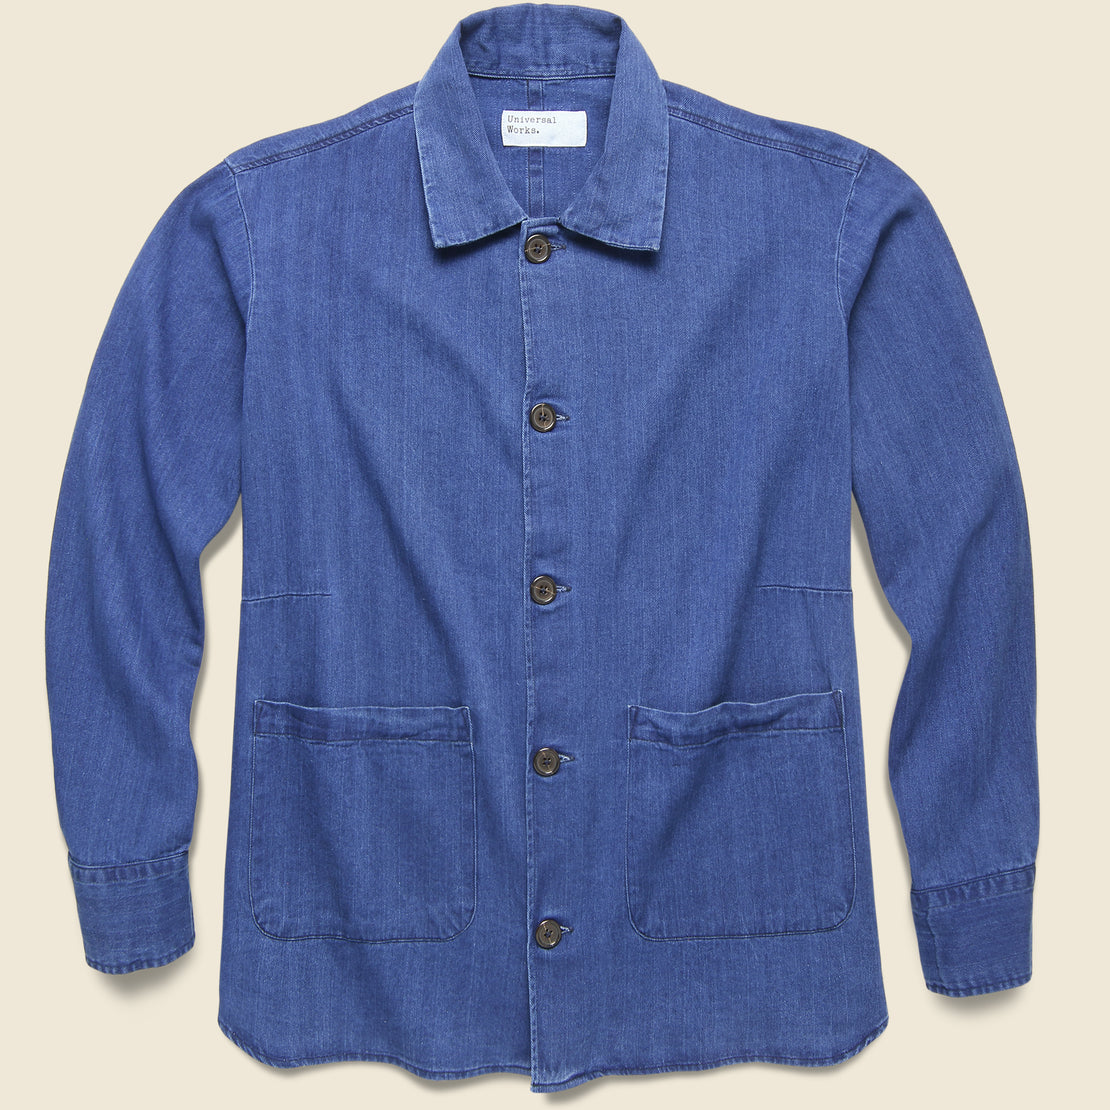 Universal Works Herringbone Denim Travail Shirt Jacket - Washed Indigo